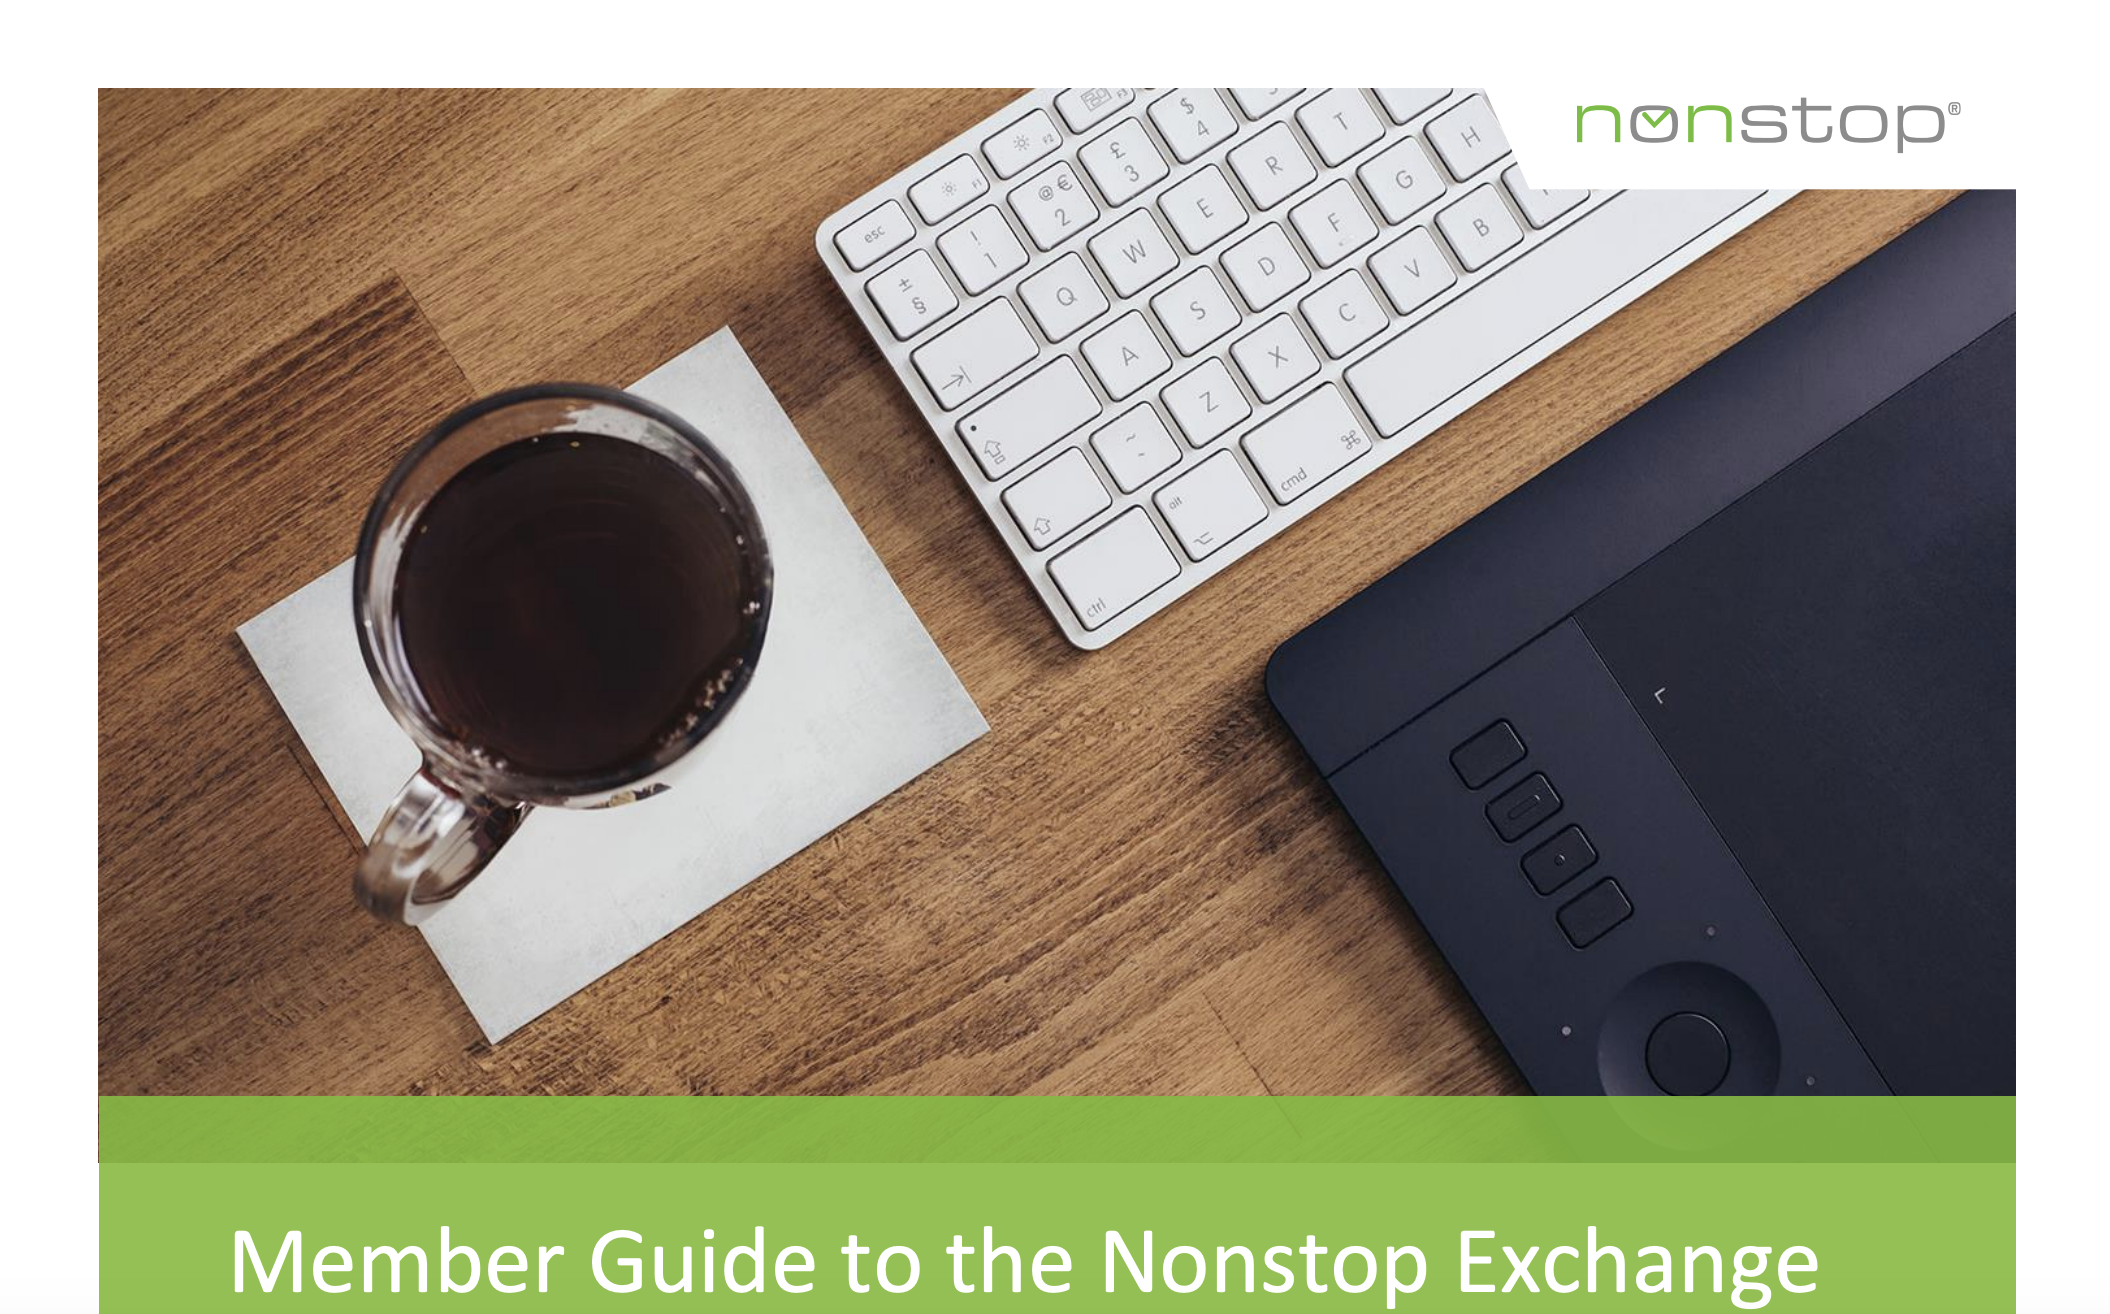 Employee Guide to the Nonstop Exchange